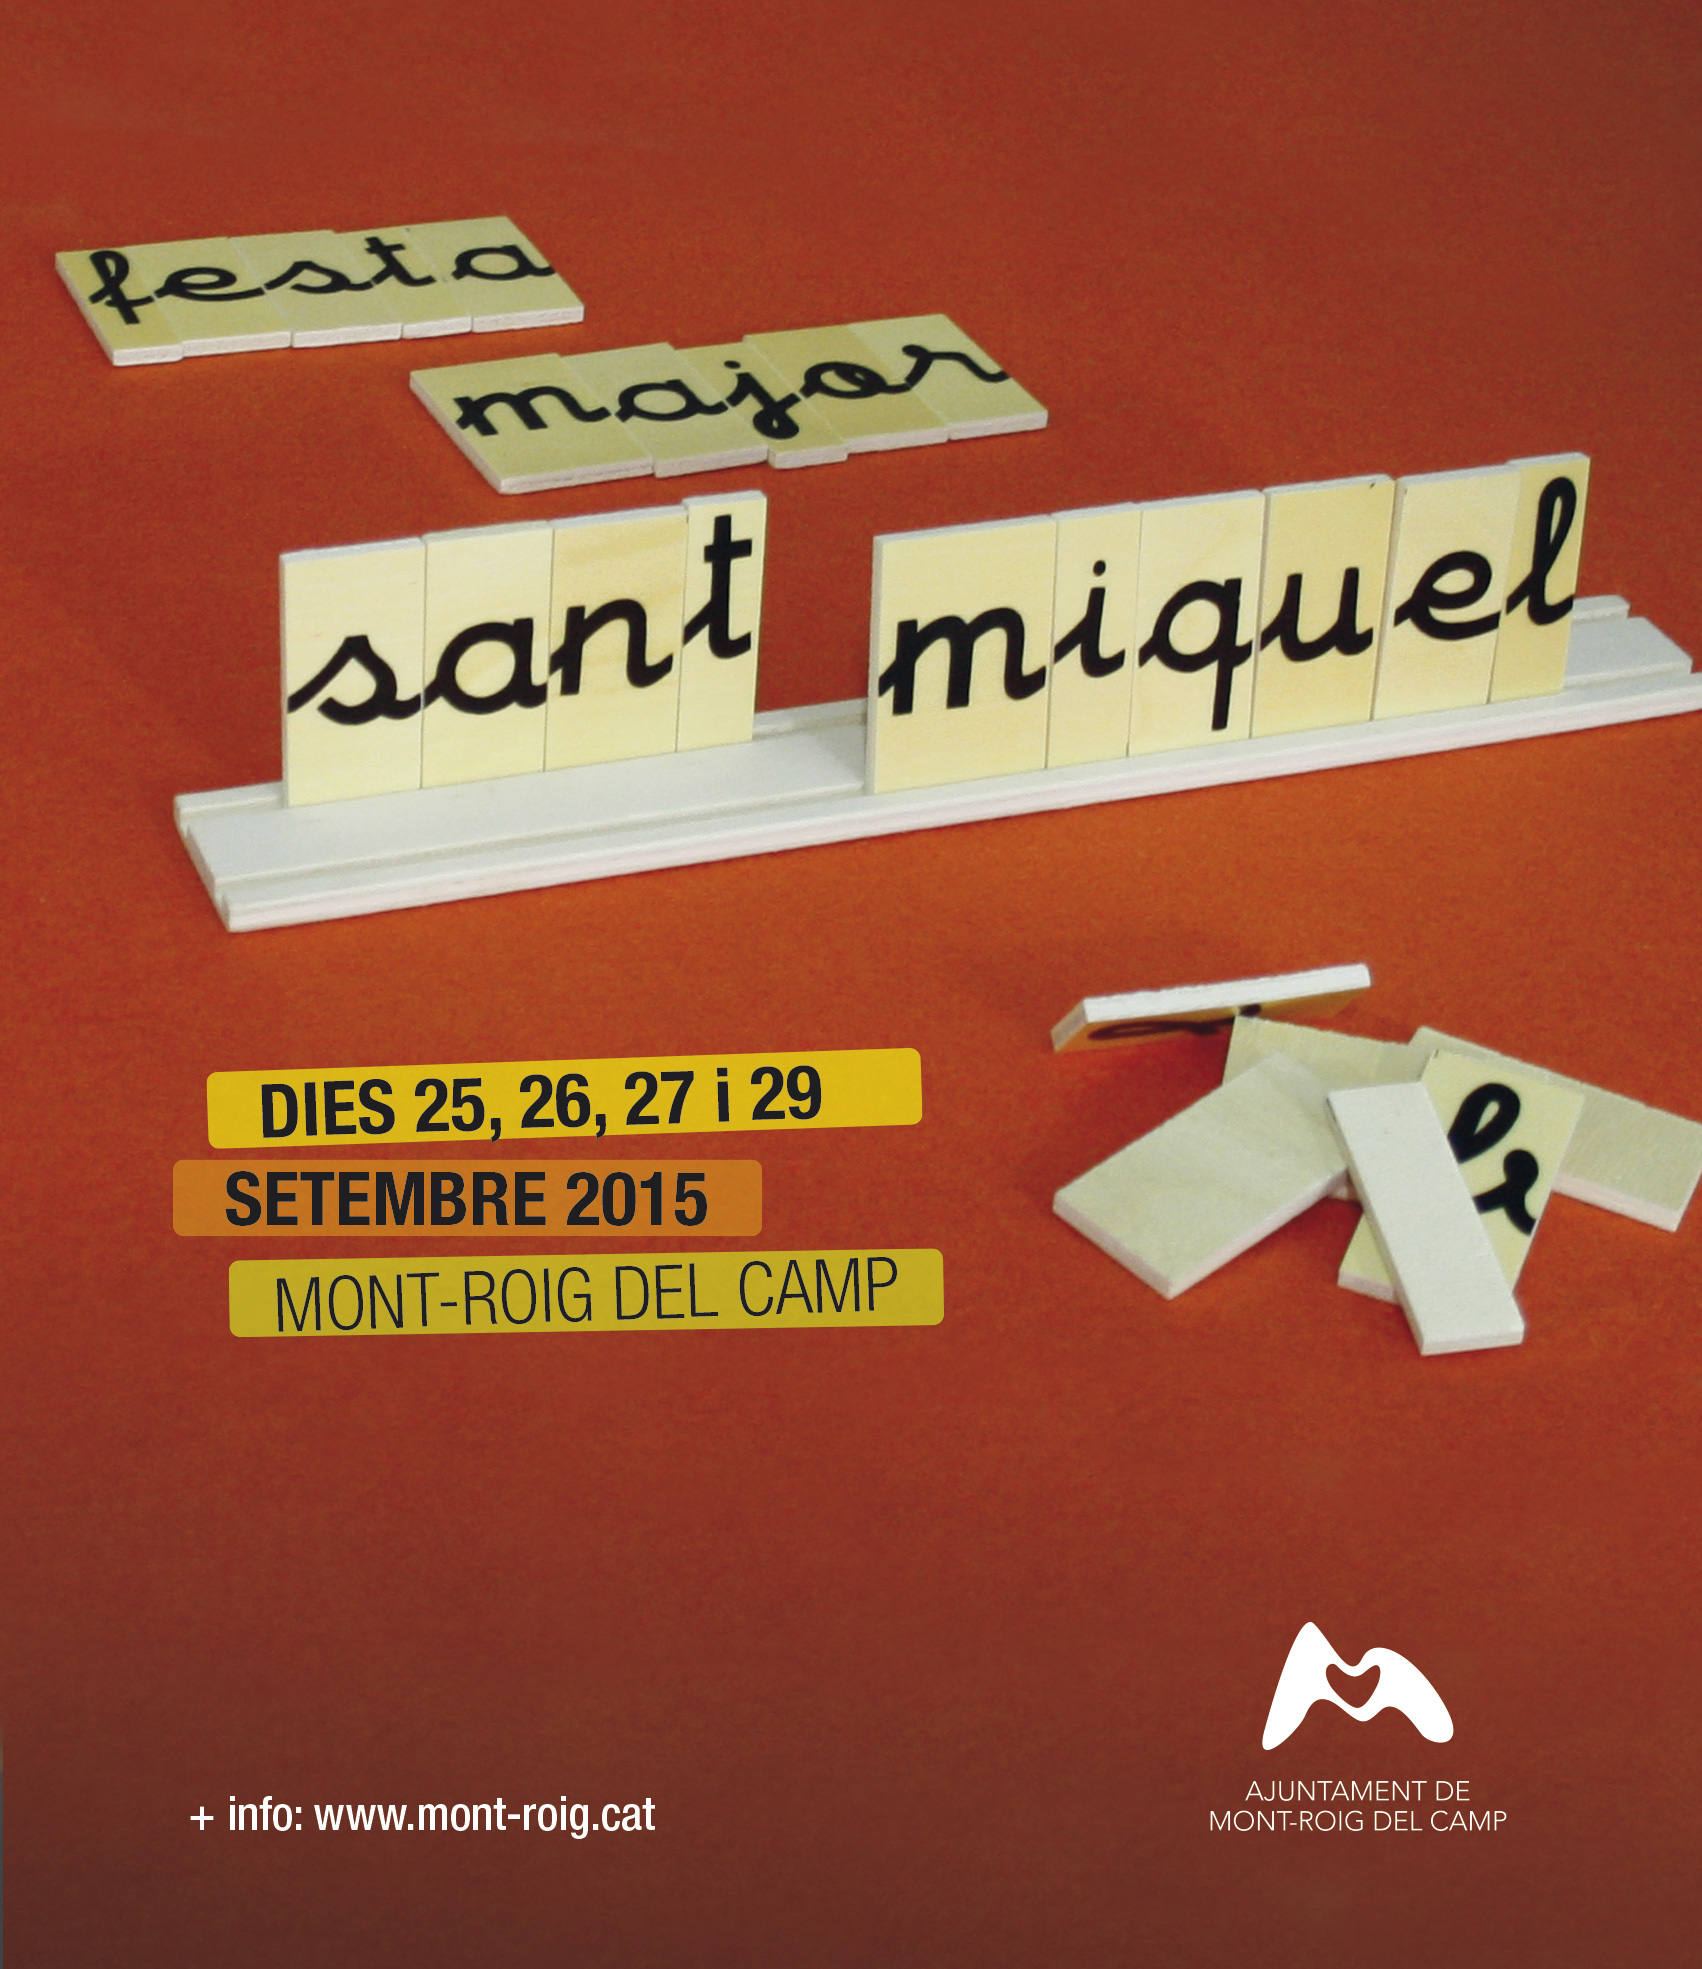 Festa Major Sant Miquel 2015